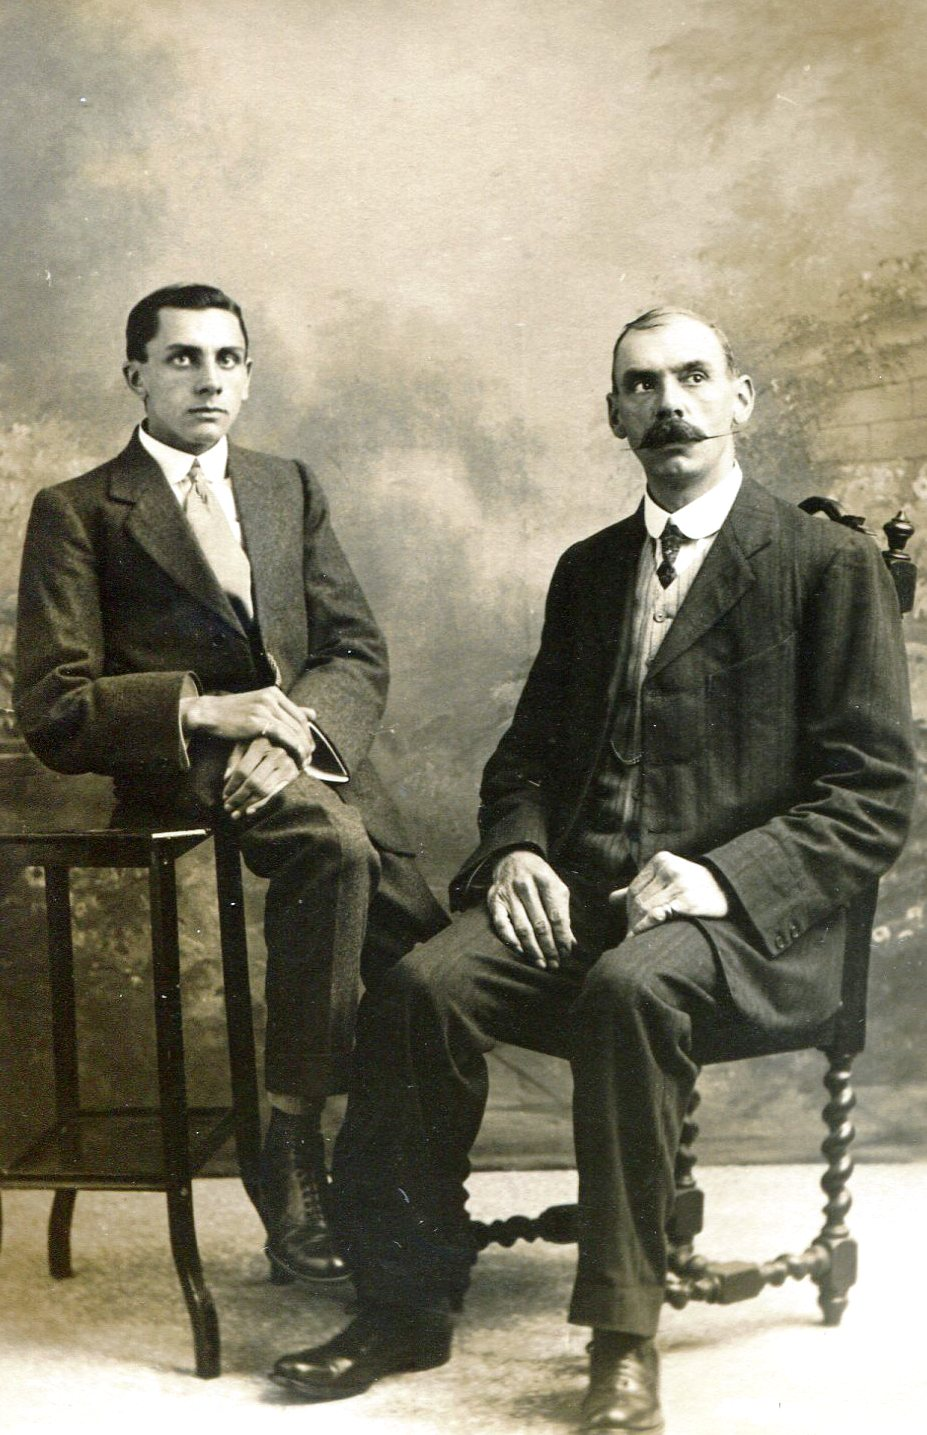 Percy Fiske and his father Herbert